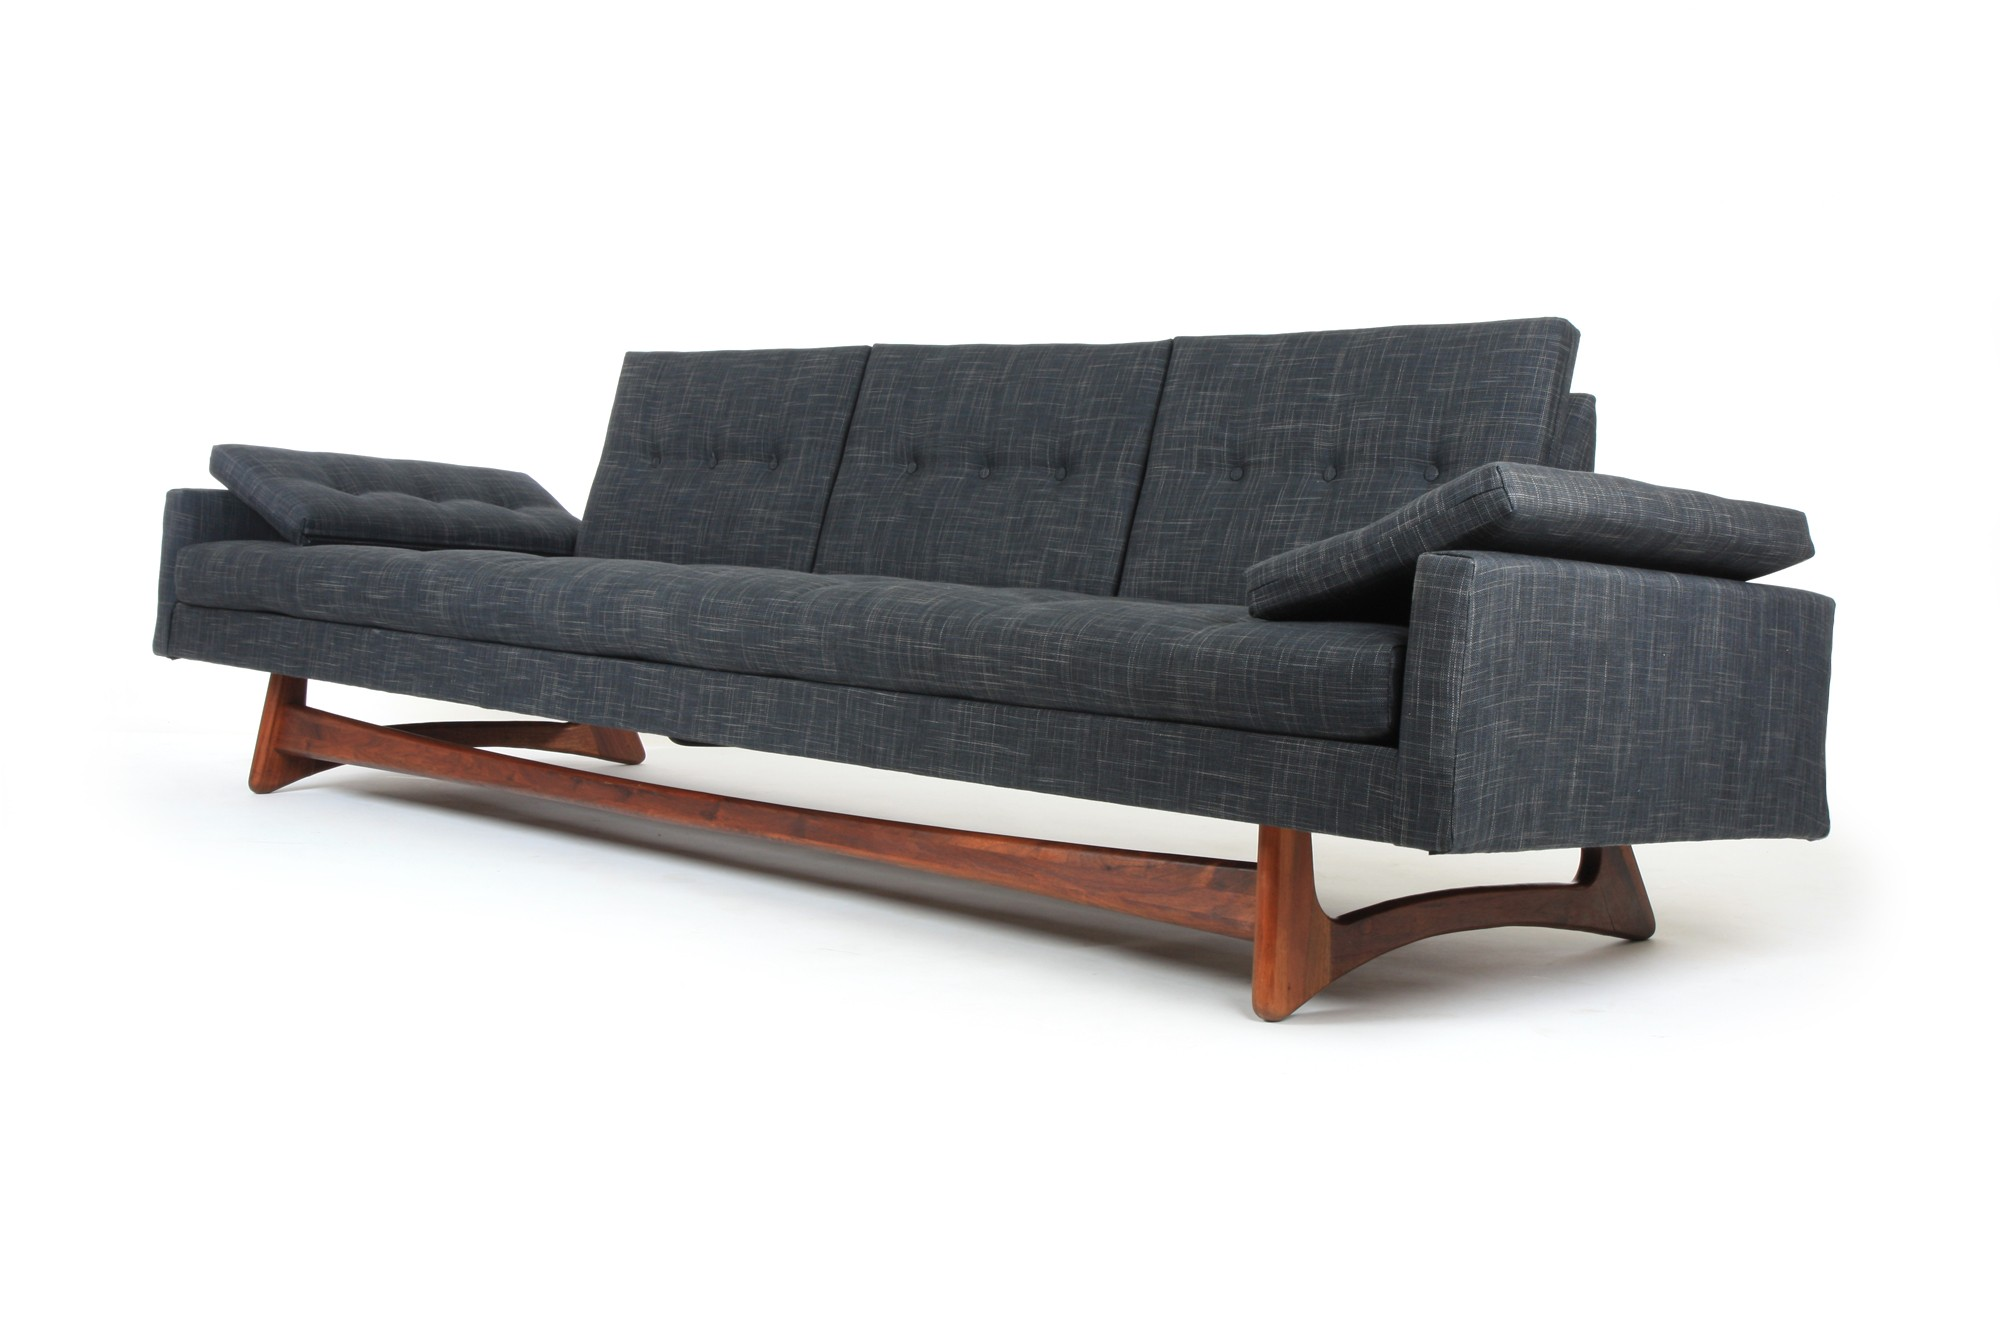 Sofa Beds Online Nz Mr Bigglesworthy Mid Century Modern And Designer Retro Furniture